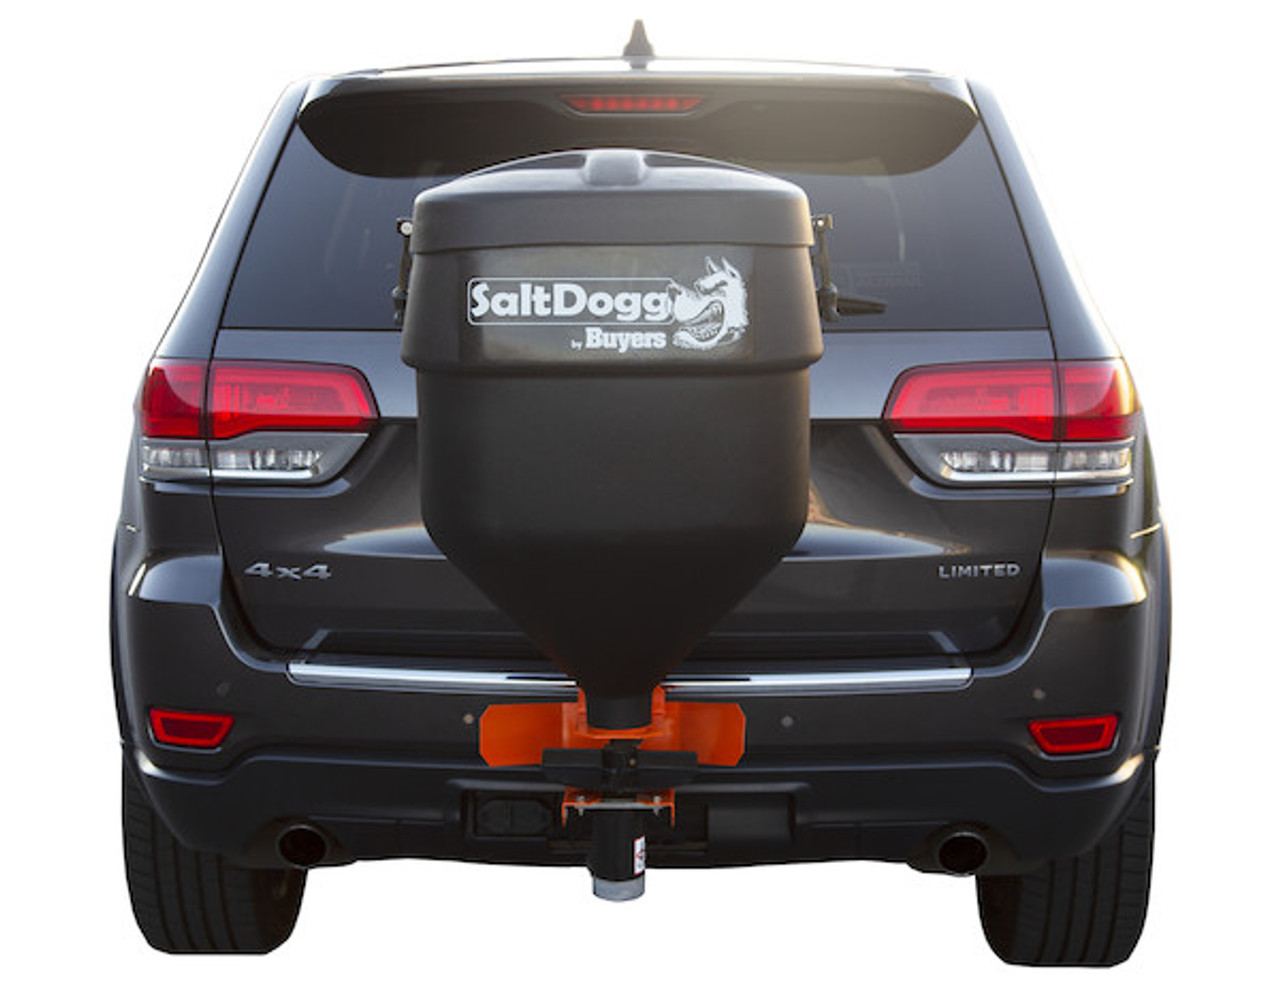 TGSUV1B BUYERS SALTDOGG 4.4 CUBIC FOOT TAILGATE SPREADER